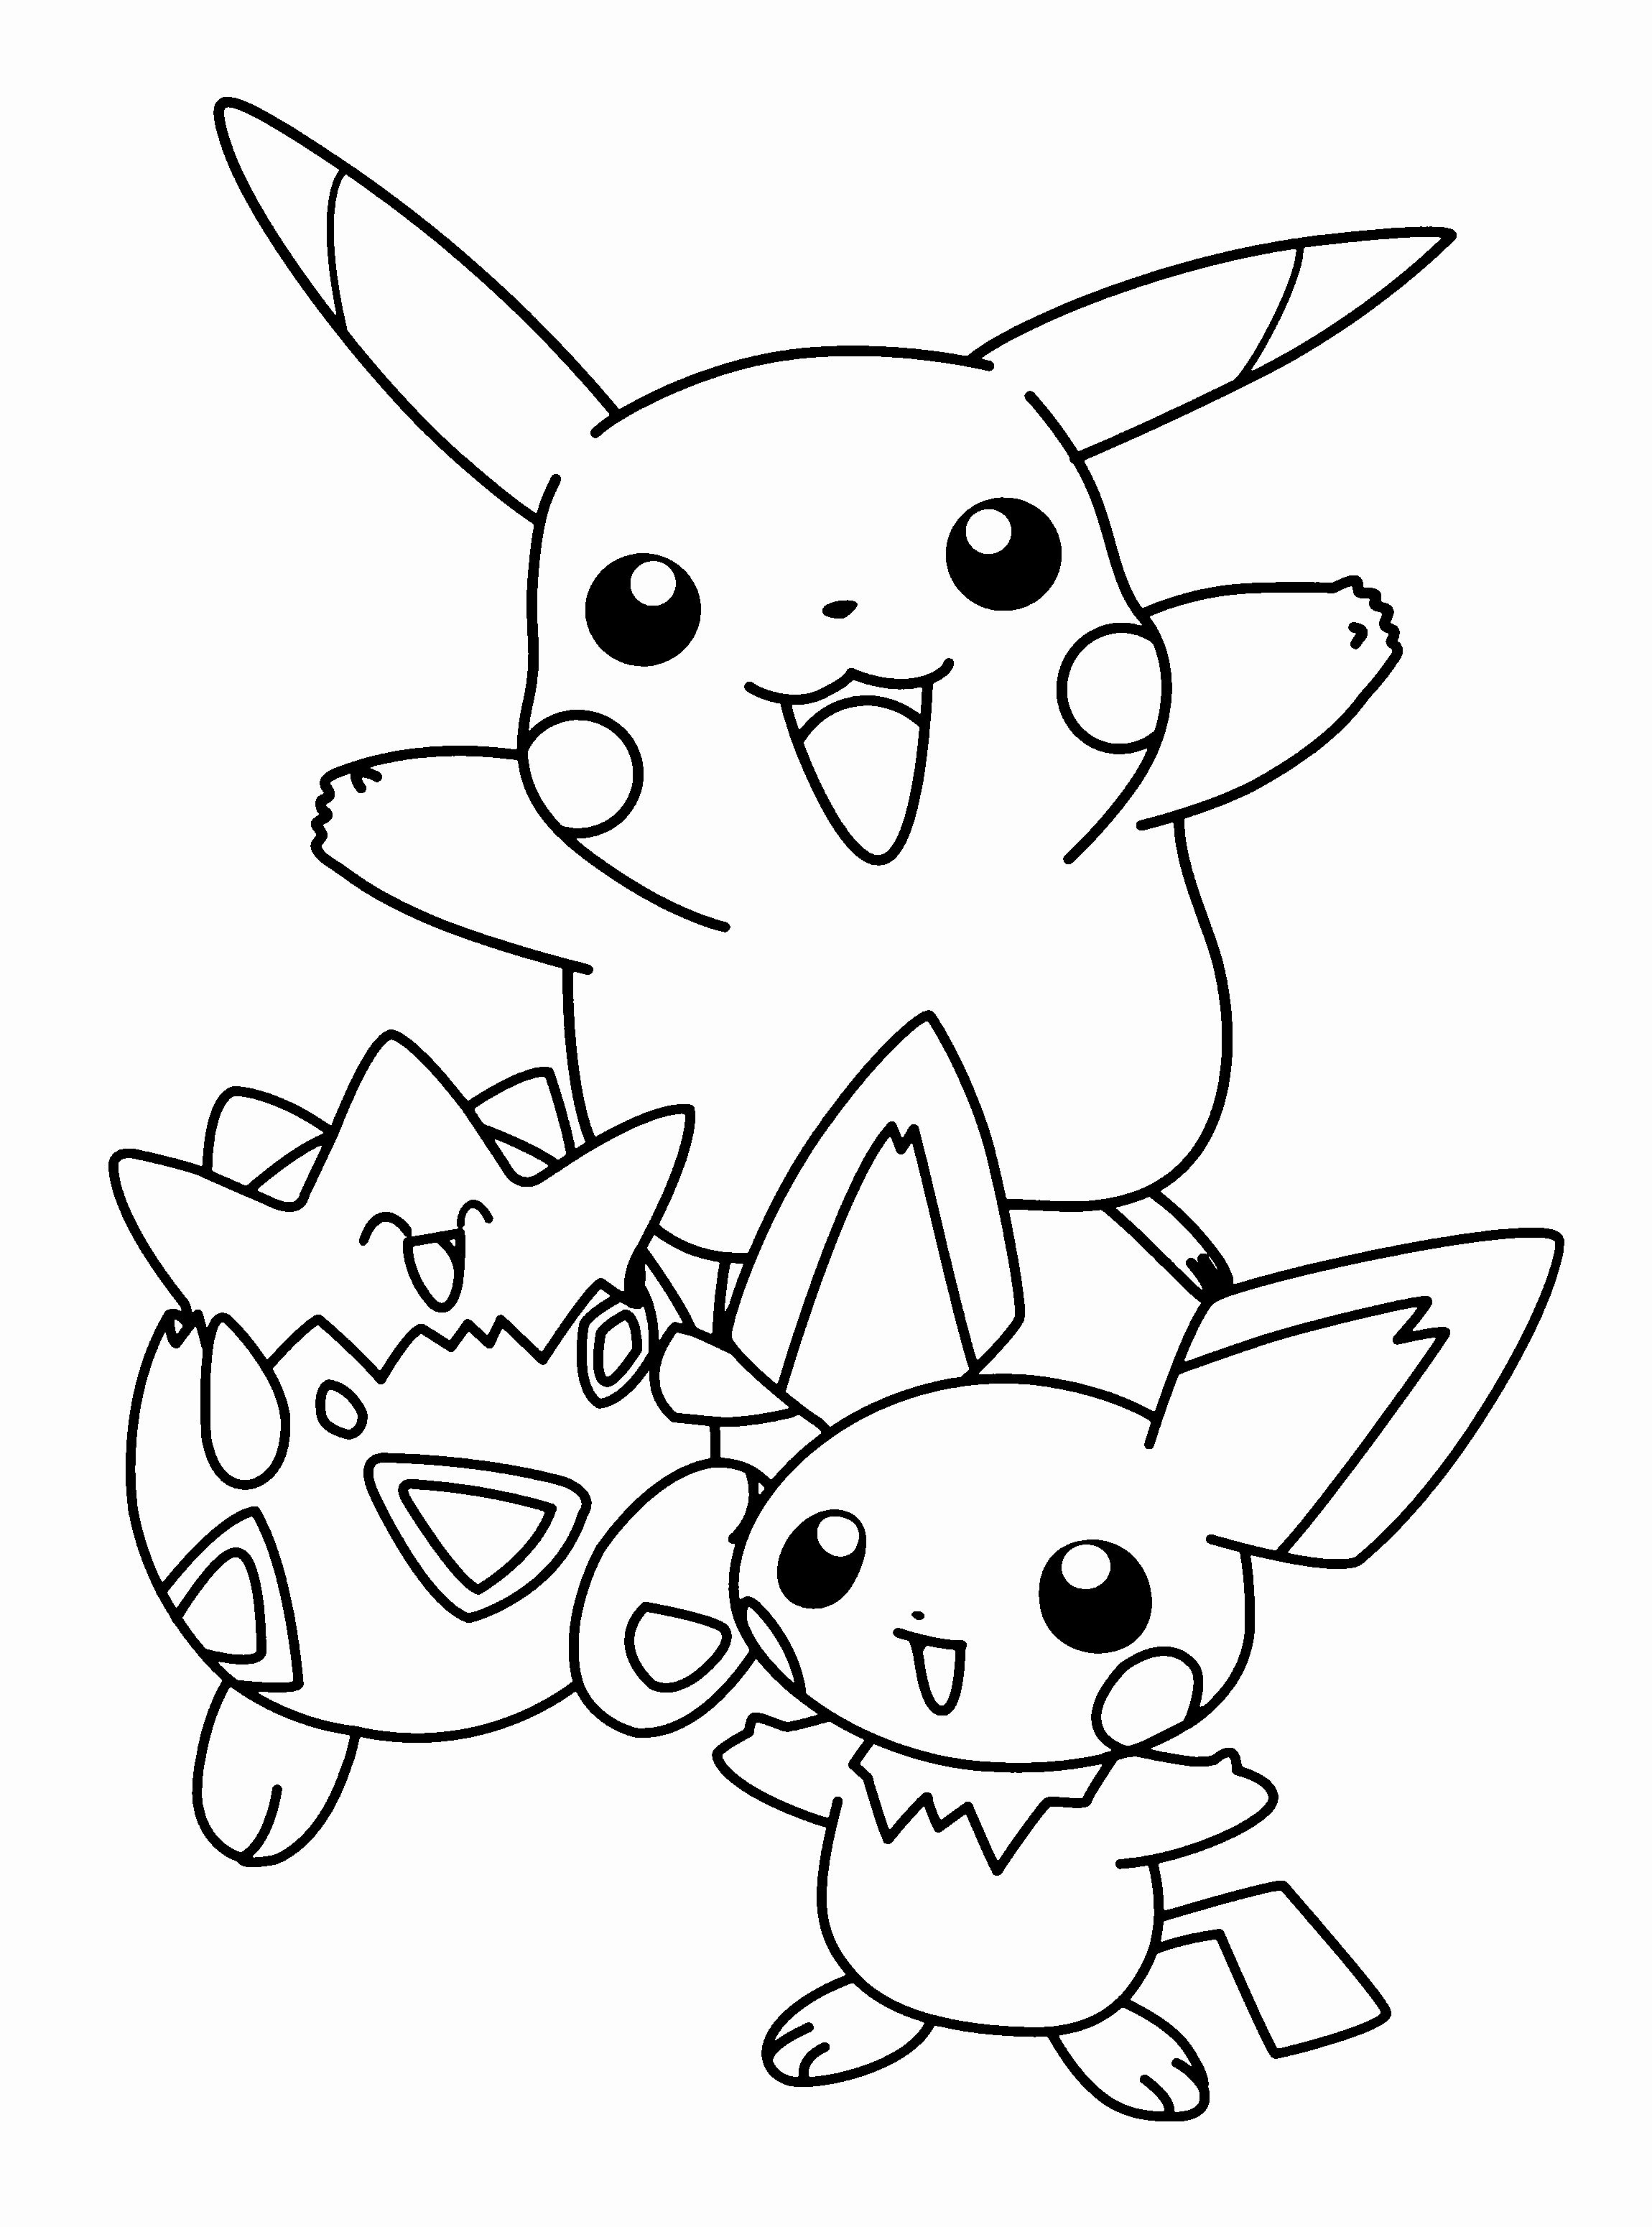 Printable Pokemon Coloring Pages Beautiful All Pokemon Coloring Pages And Print For Free Pikachu Coloring Page Cartoon Coloring Pages Pokemon Coloring Sheets